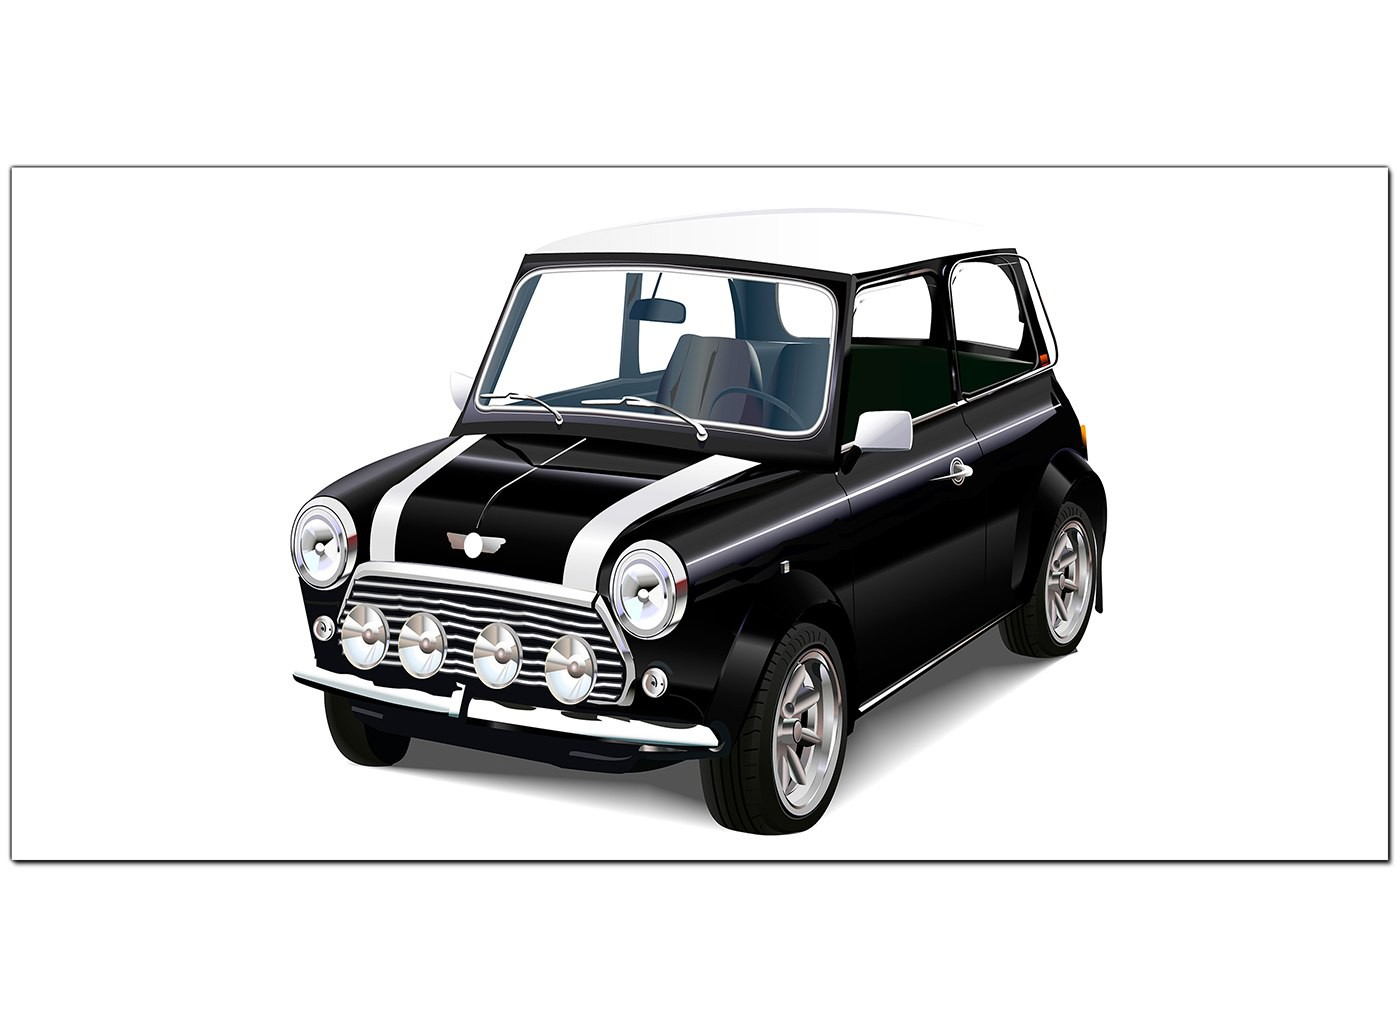 cheap black and white canvas pictures of a mini cooper car. Black Bedroom Furniture Sets. Home Design Ideas